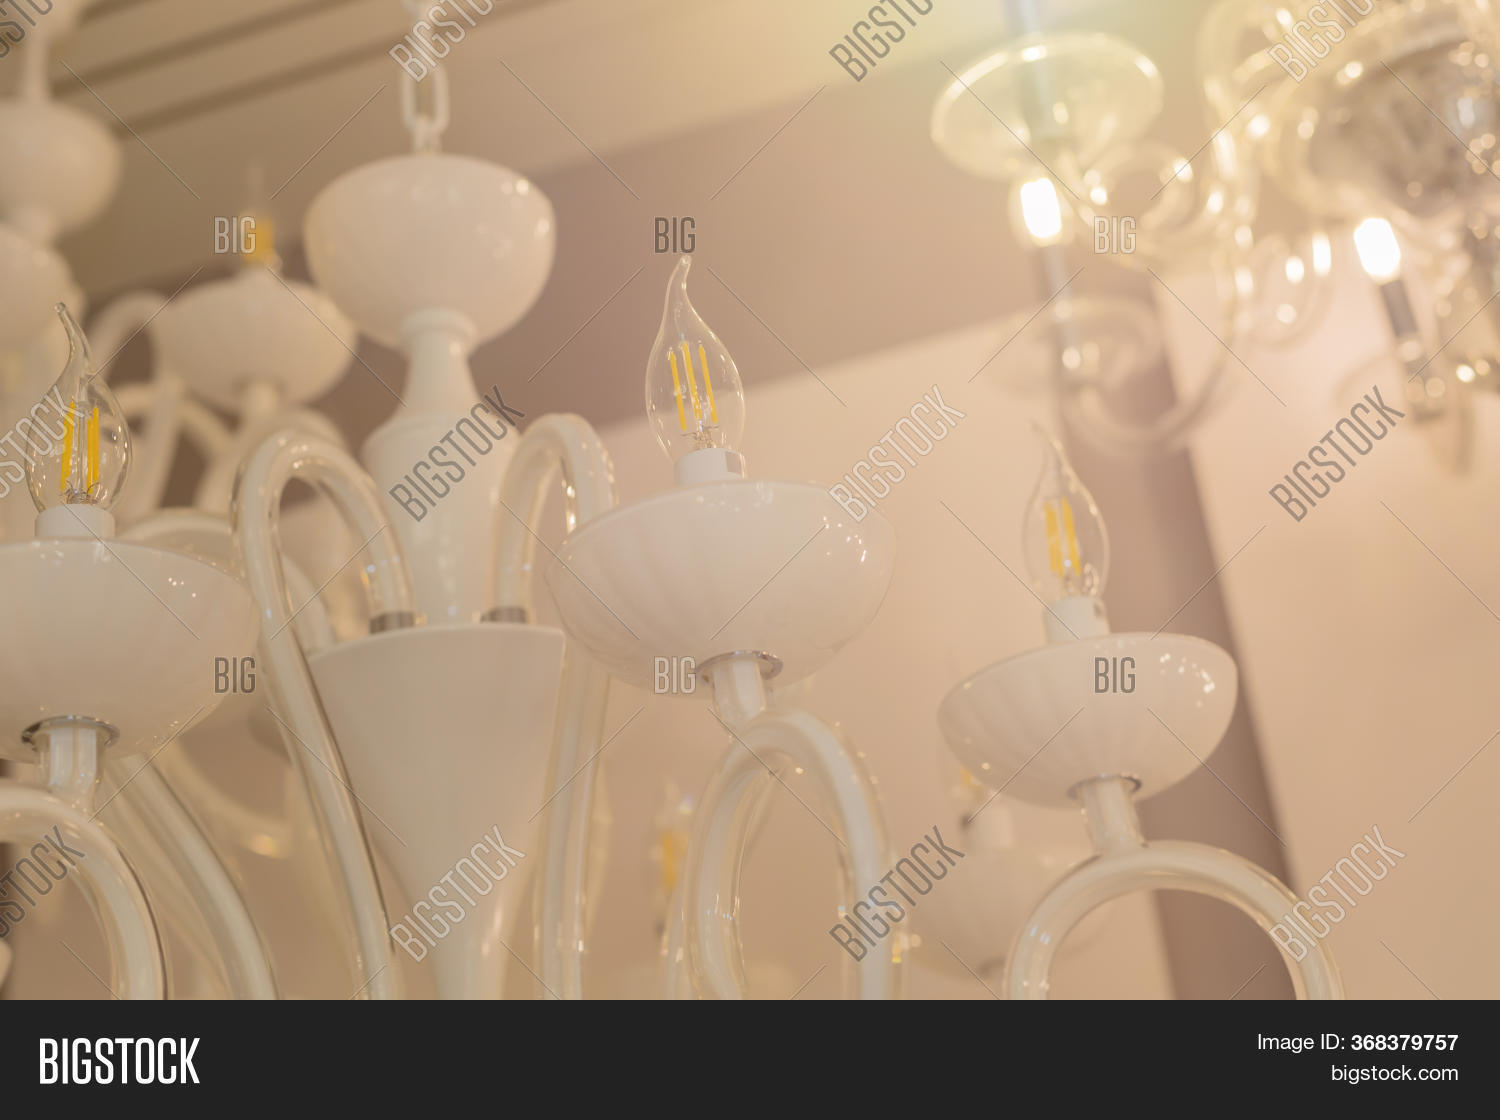 Close On Crystal Image Photo Free Trial Bigstock